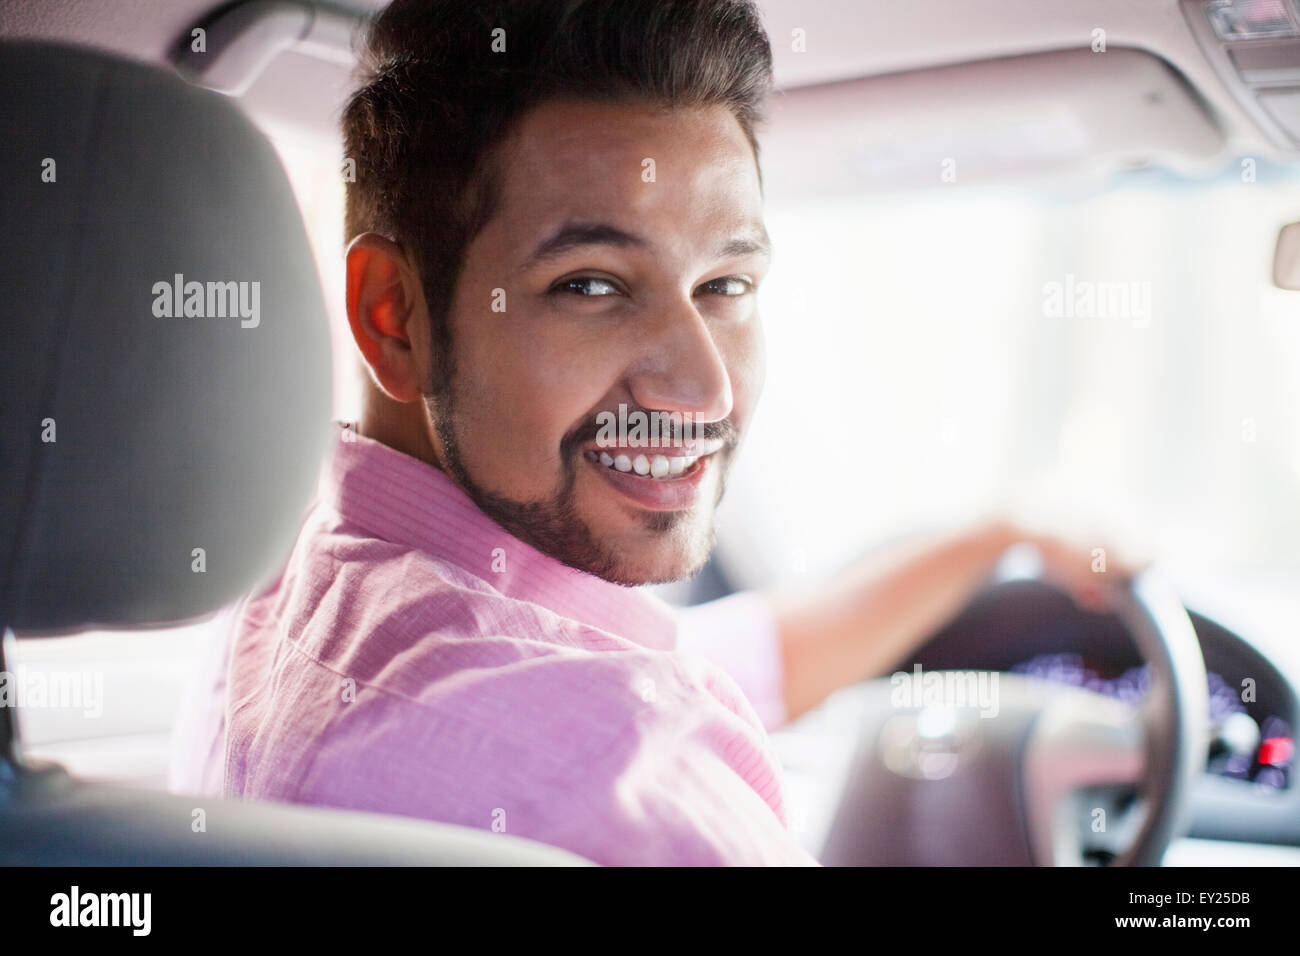 Portrait of young businessman looking over his shoulder in car - Stock Image